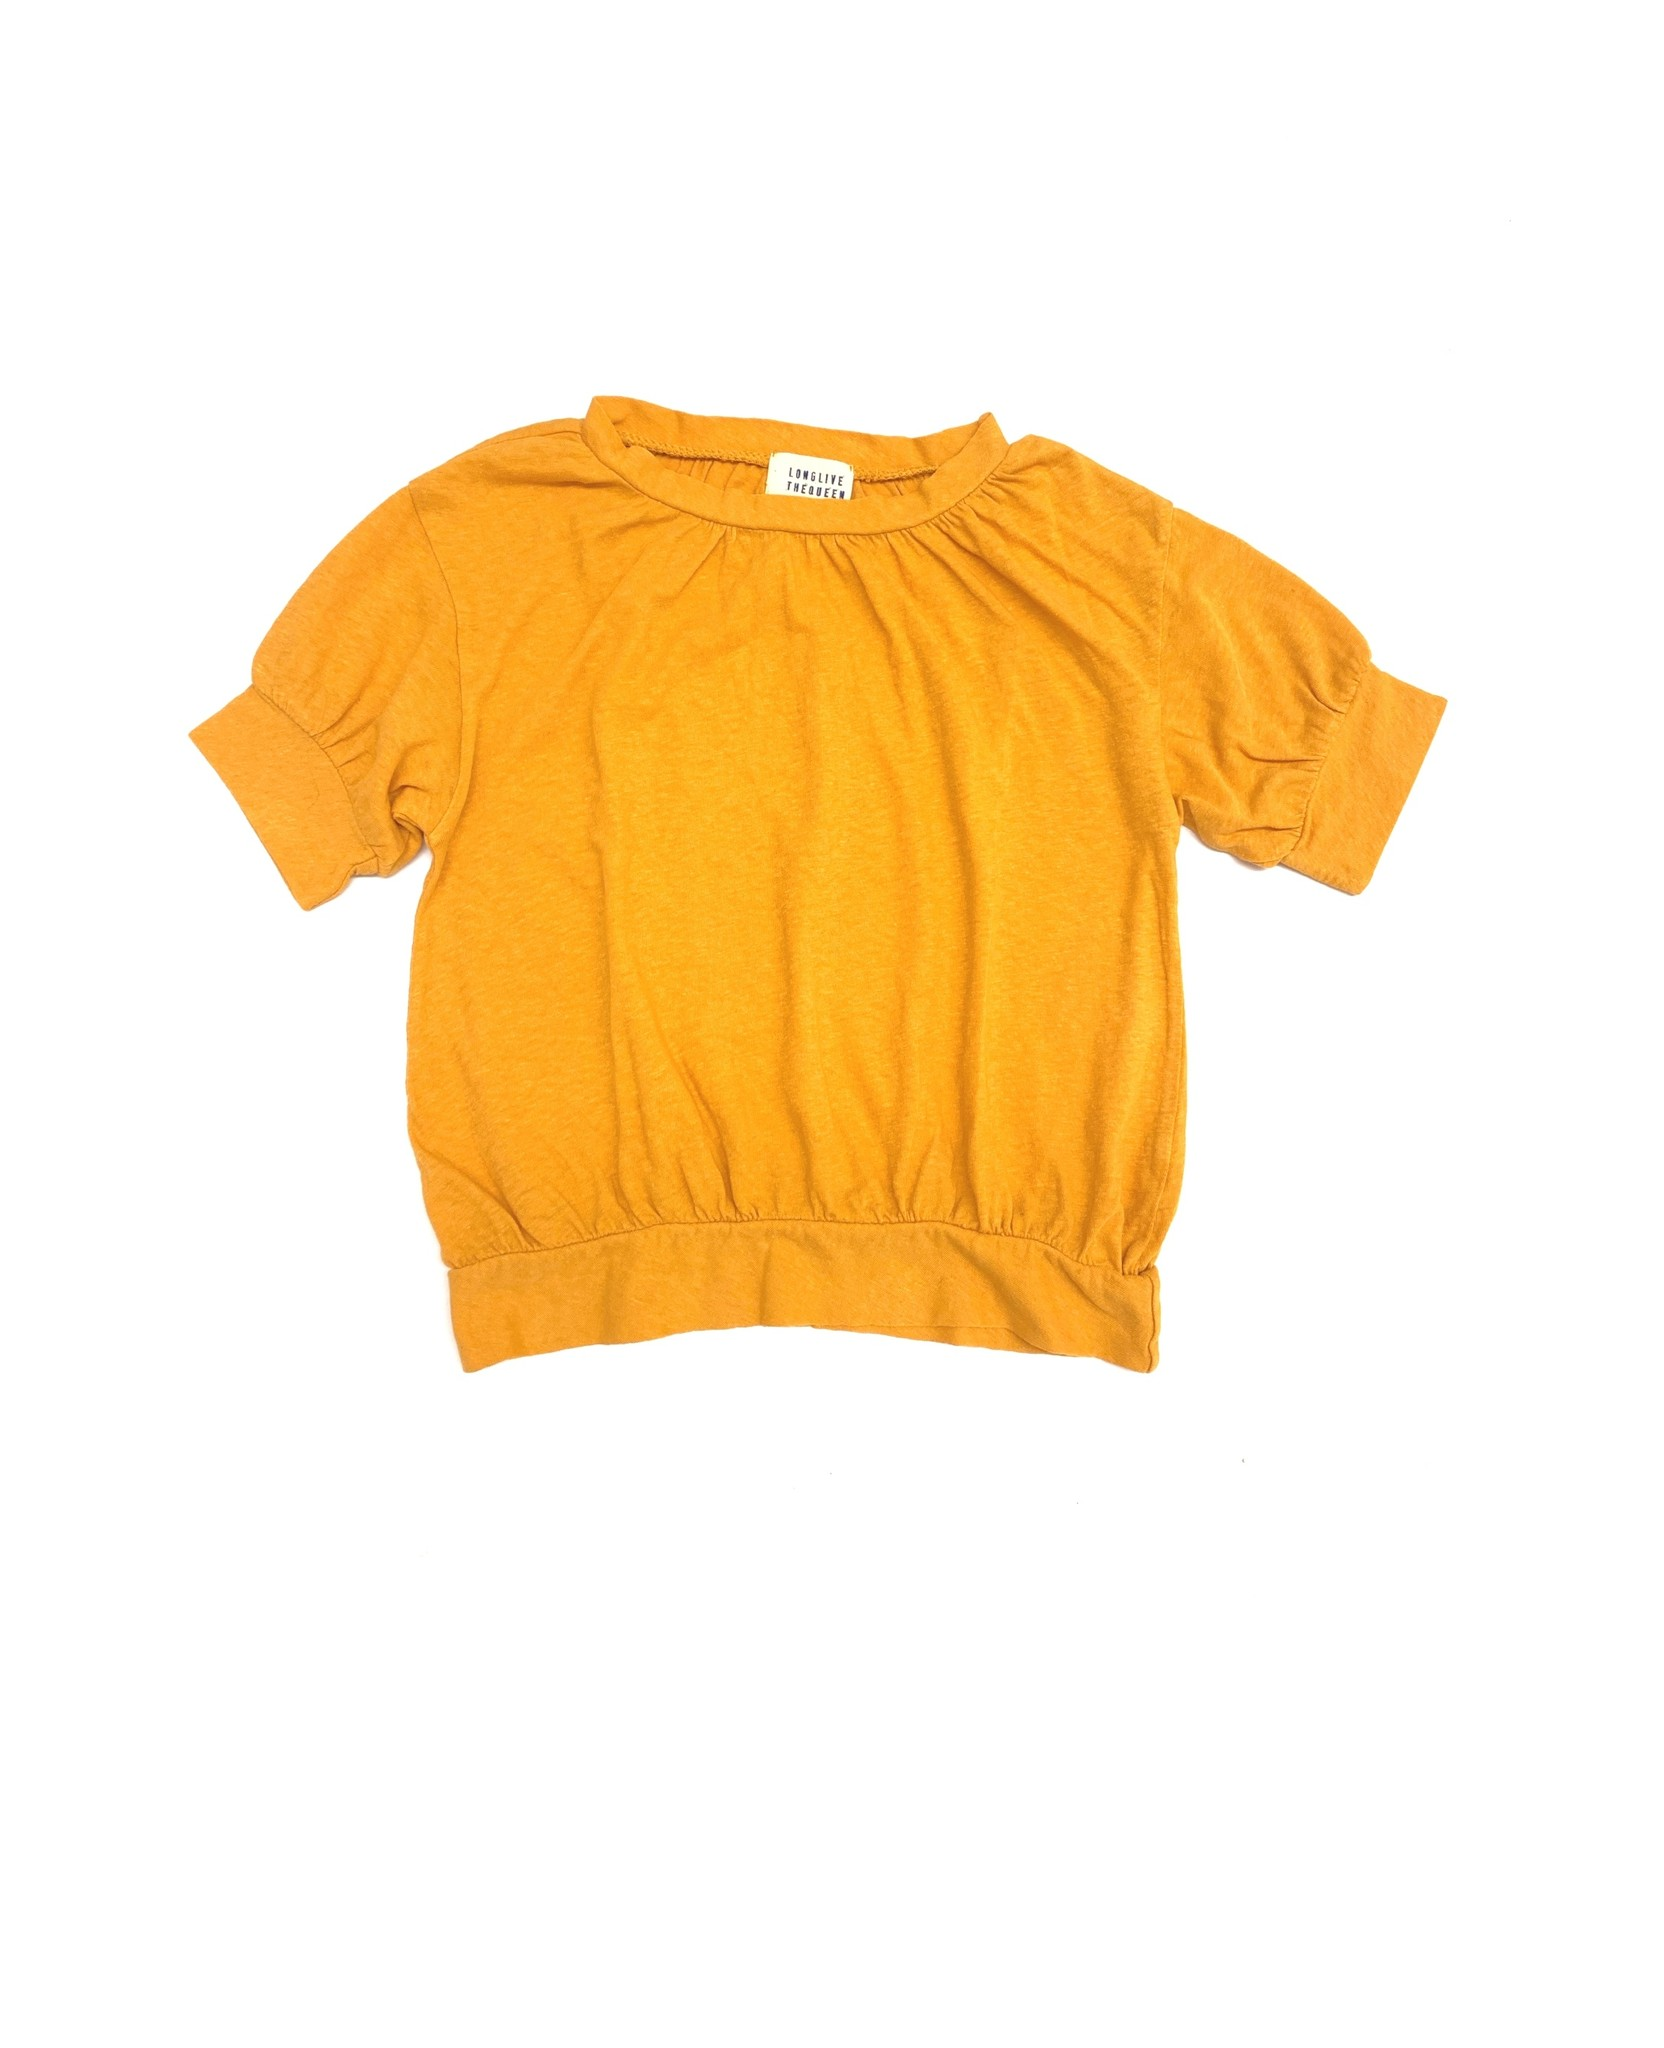 T-shirt puff golden yellow-1